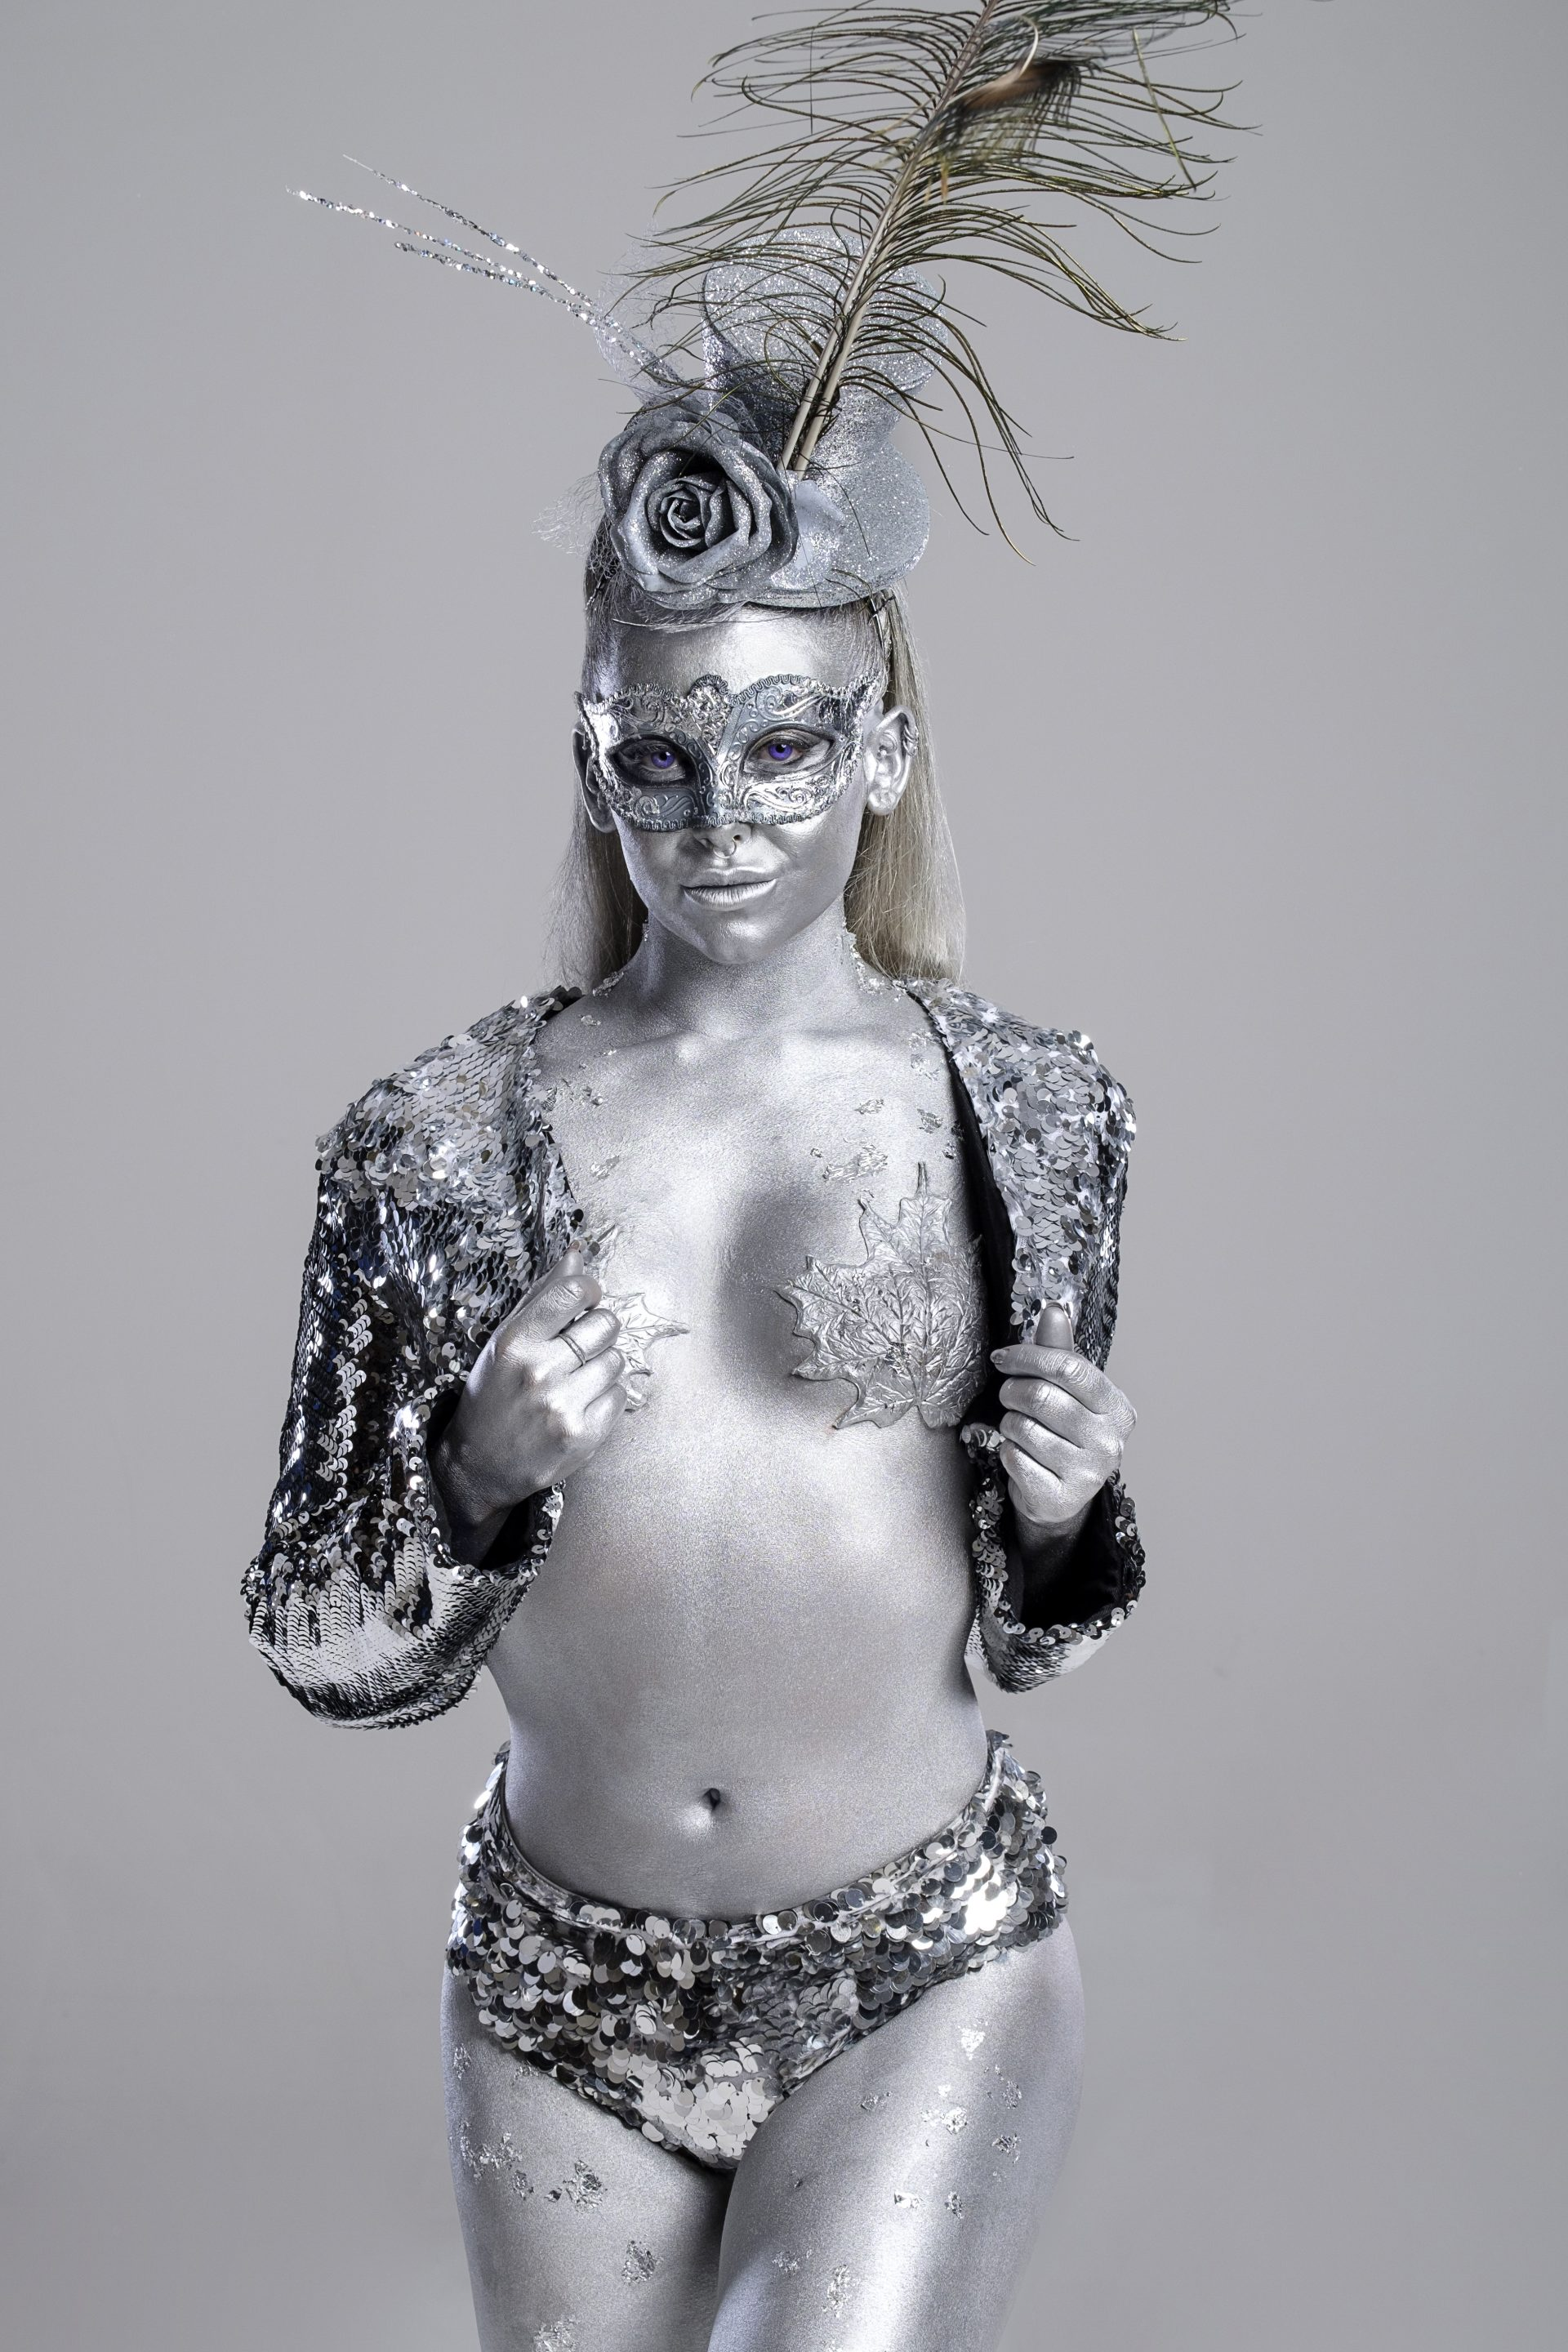 female model dancer body painted silver Christmas entertainment circus performer fire breather